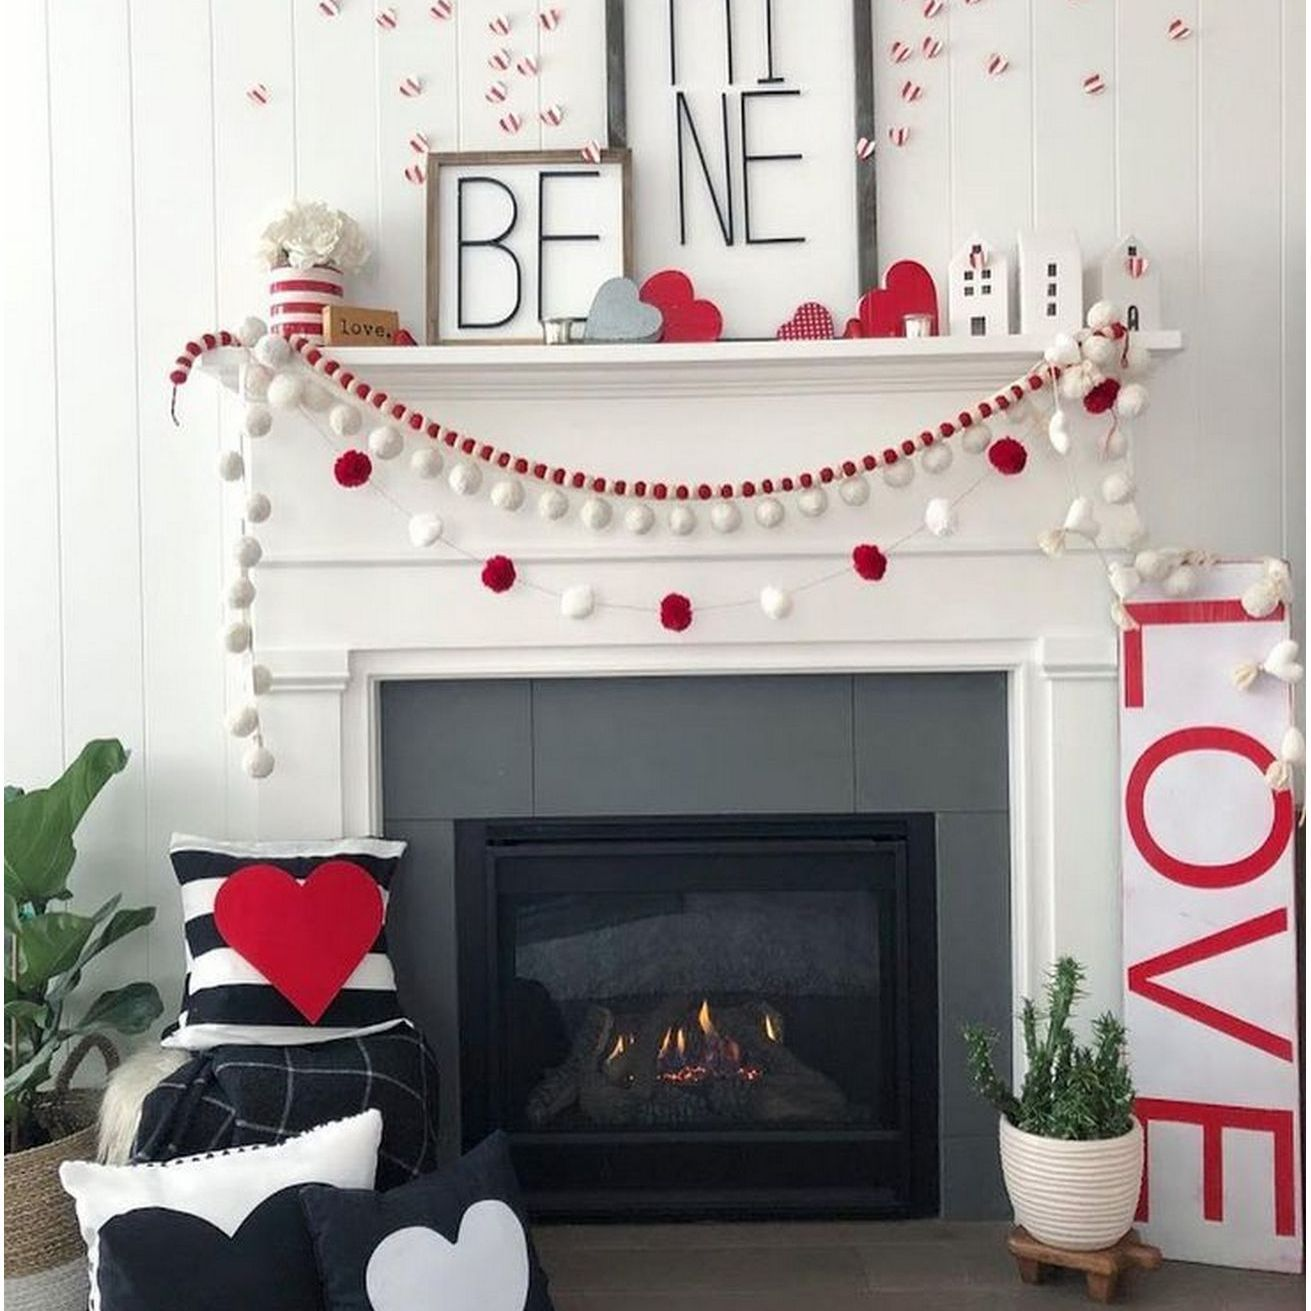 Welcome to Valentine's Day which is getting closer to Romantic Interior